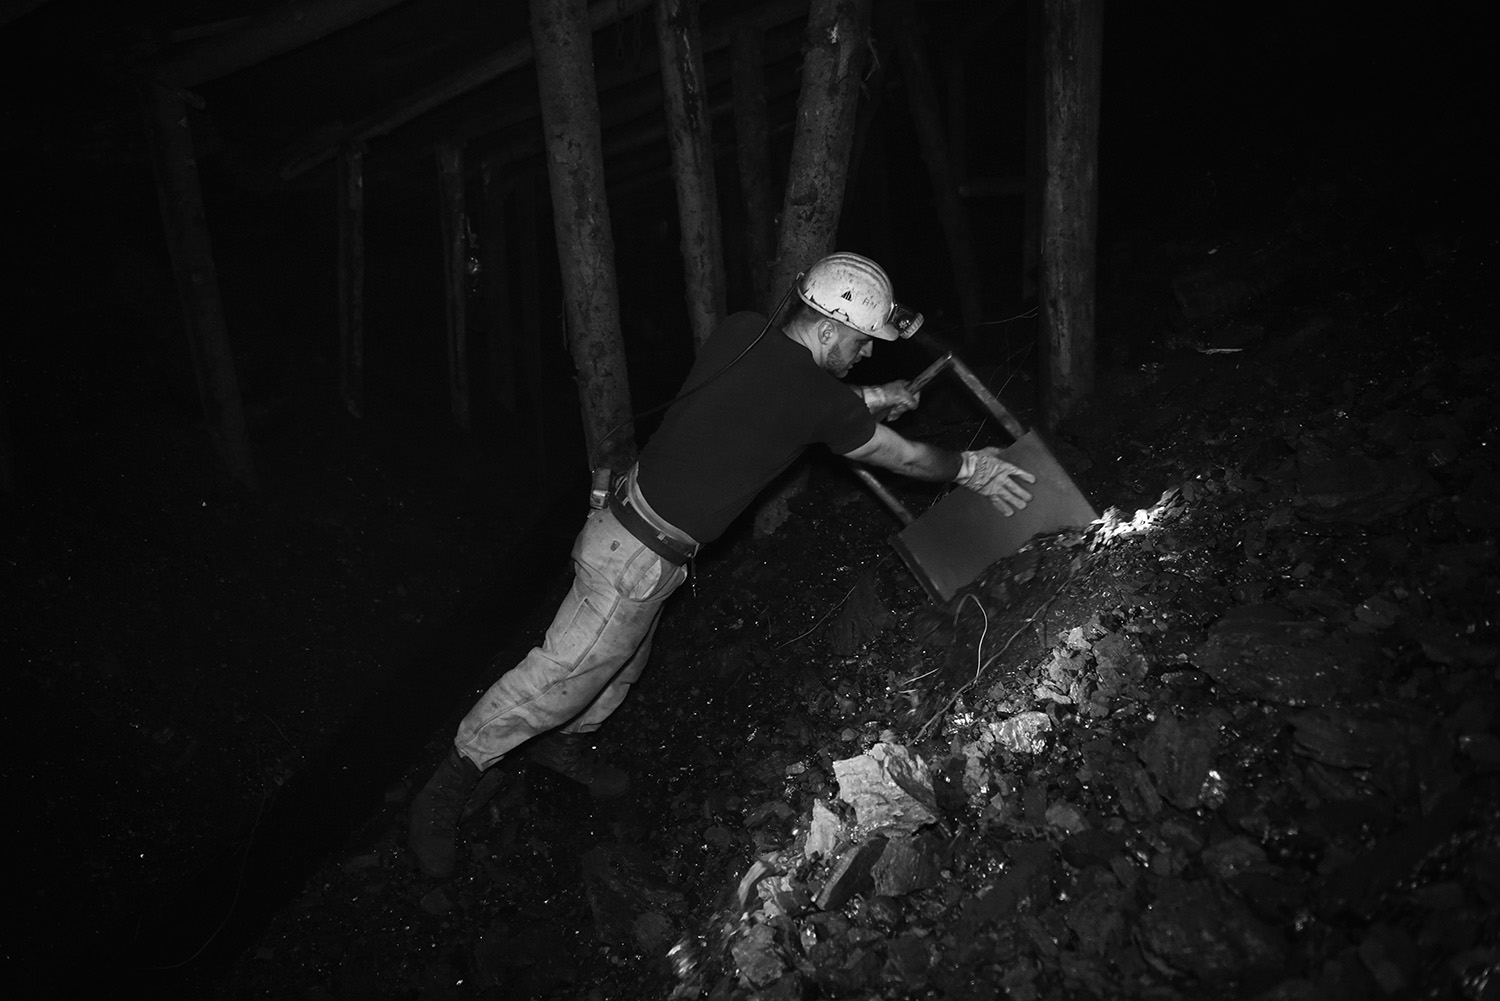 Adil Muhic, using a shovel, pushes the coal on a conveyor belt that draws coal to the surface.